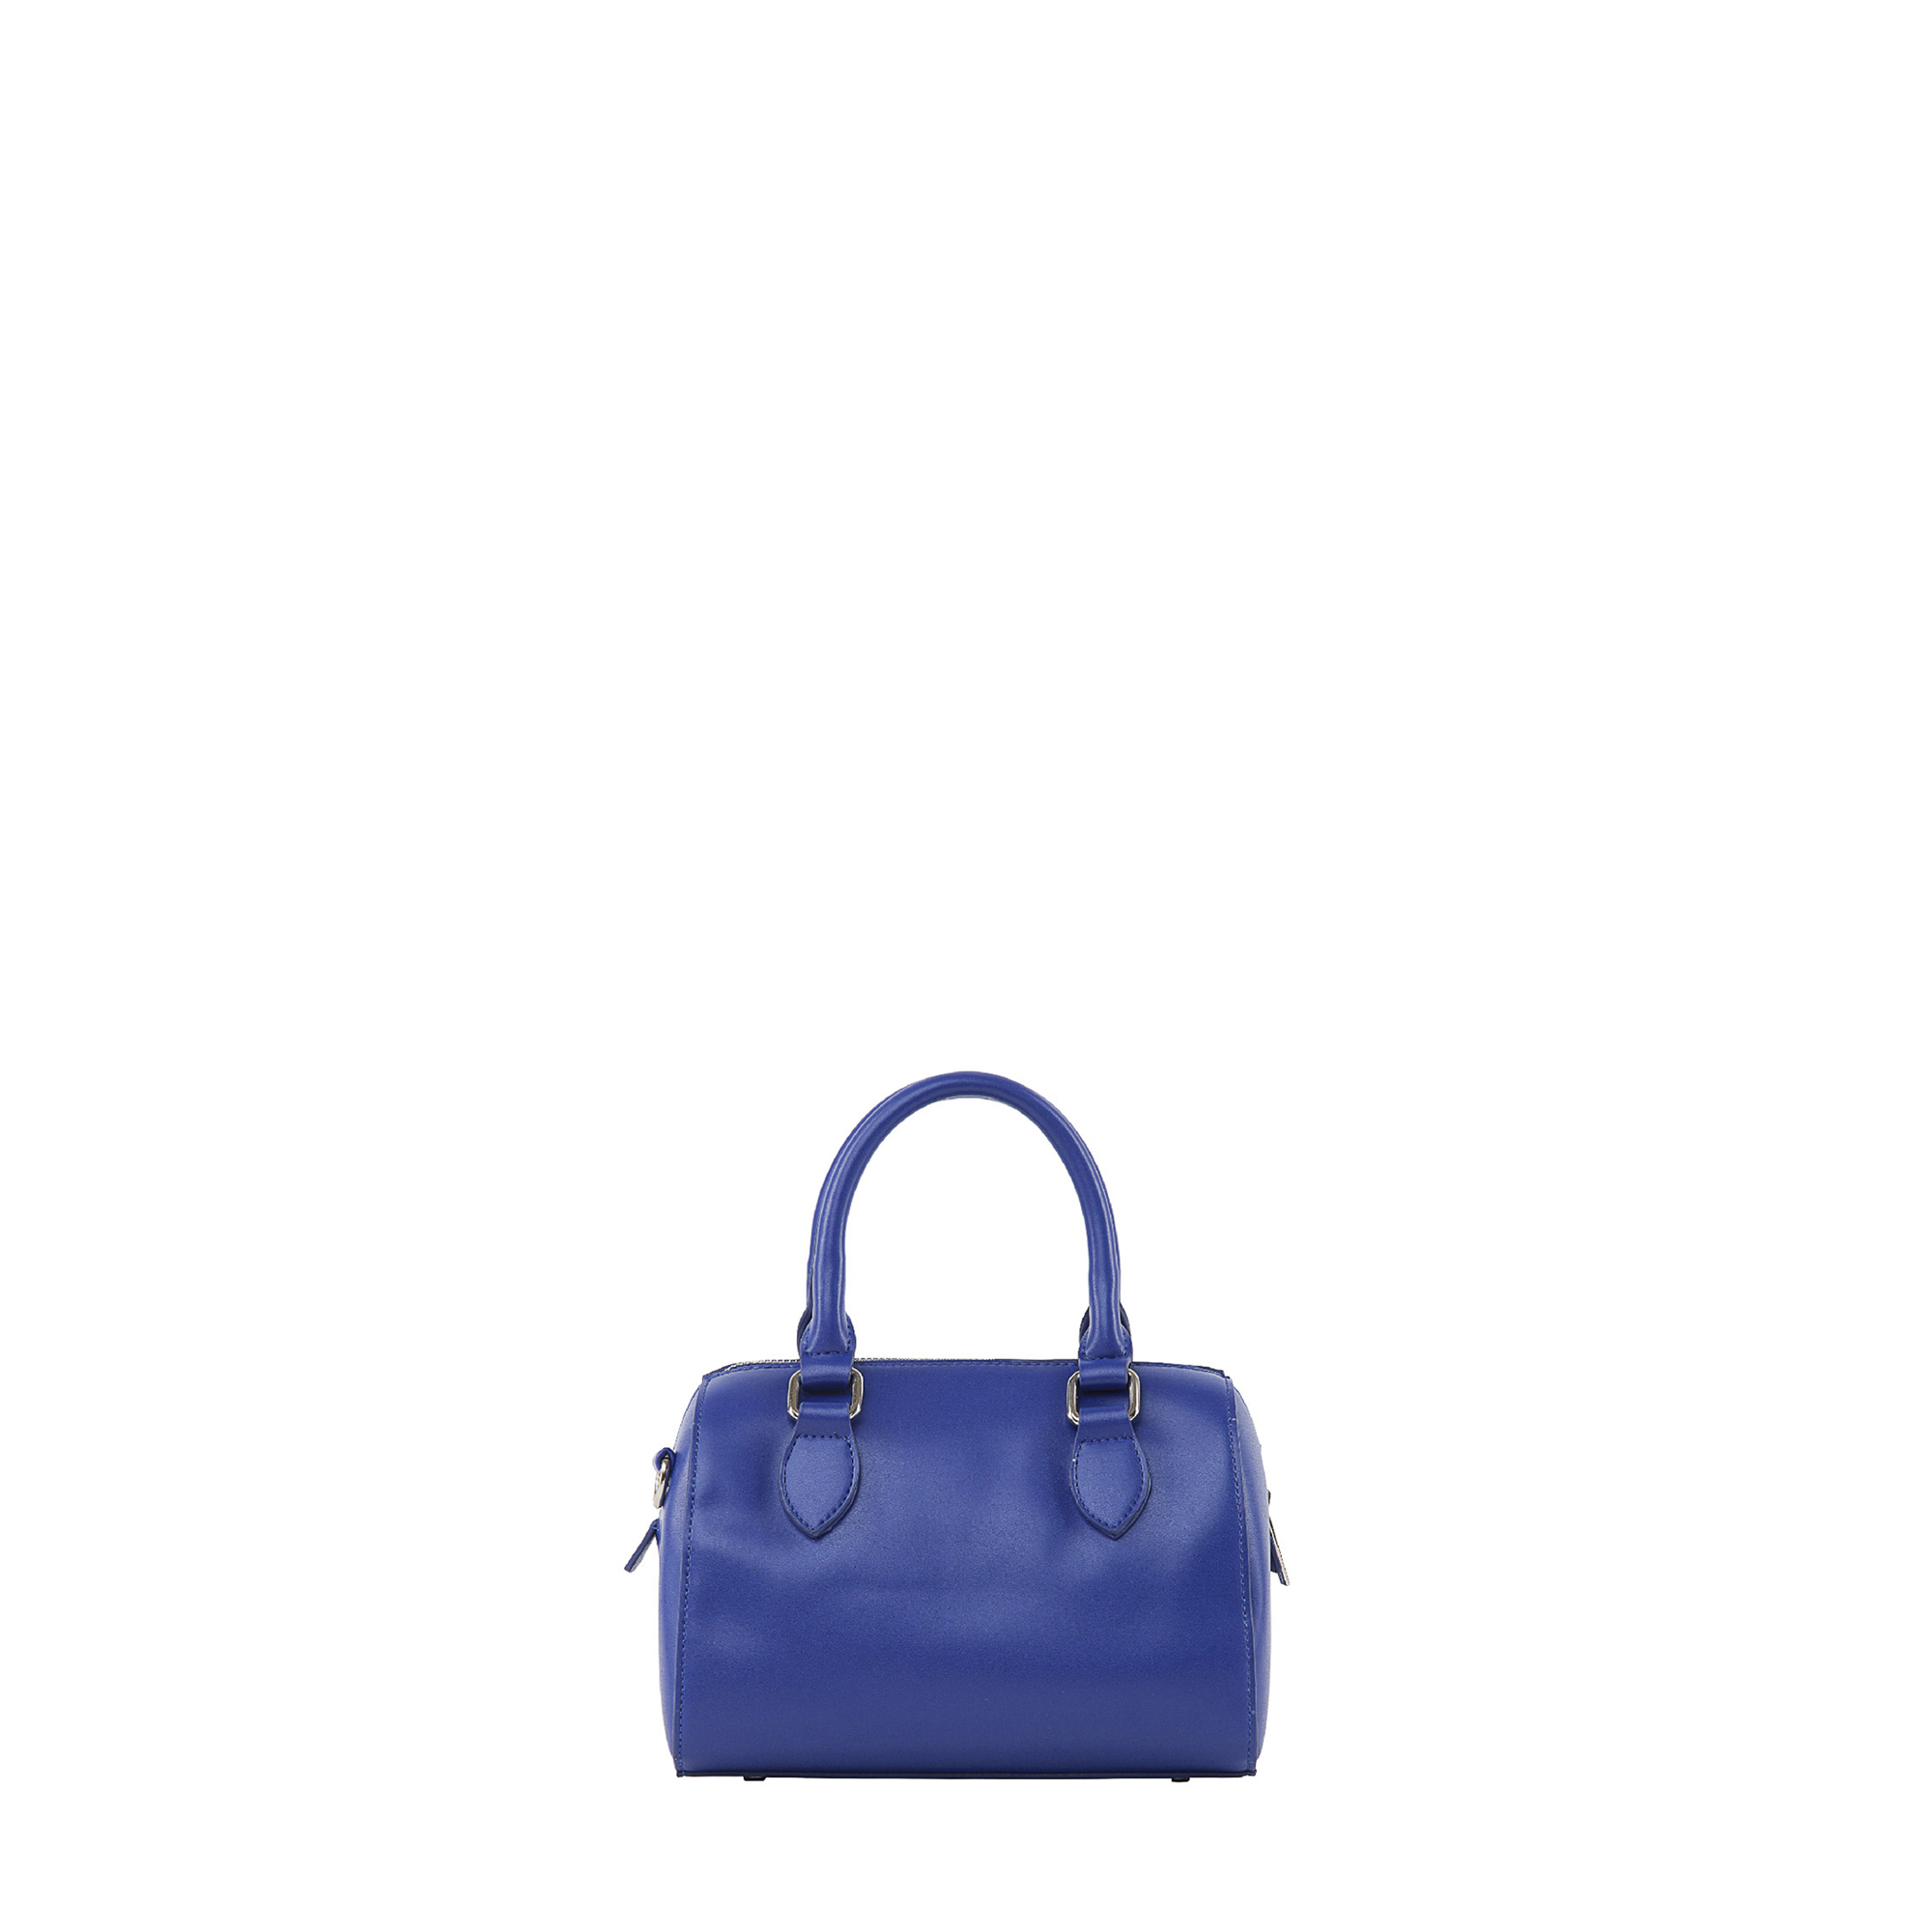 BAG - GBDA1144 - GAELLE PARIS